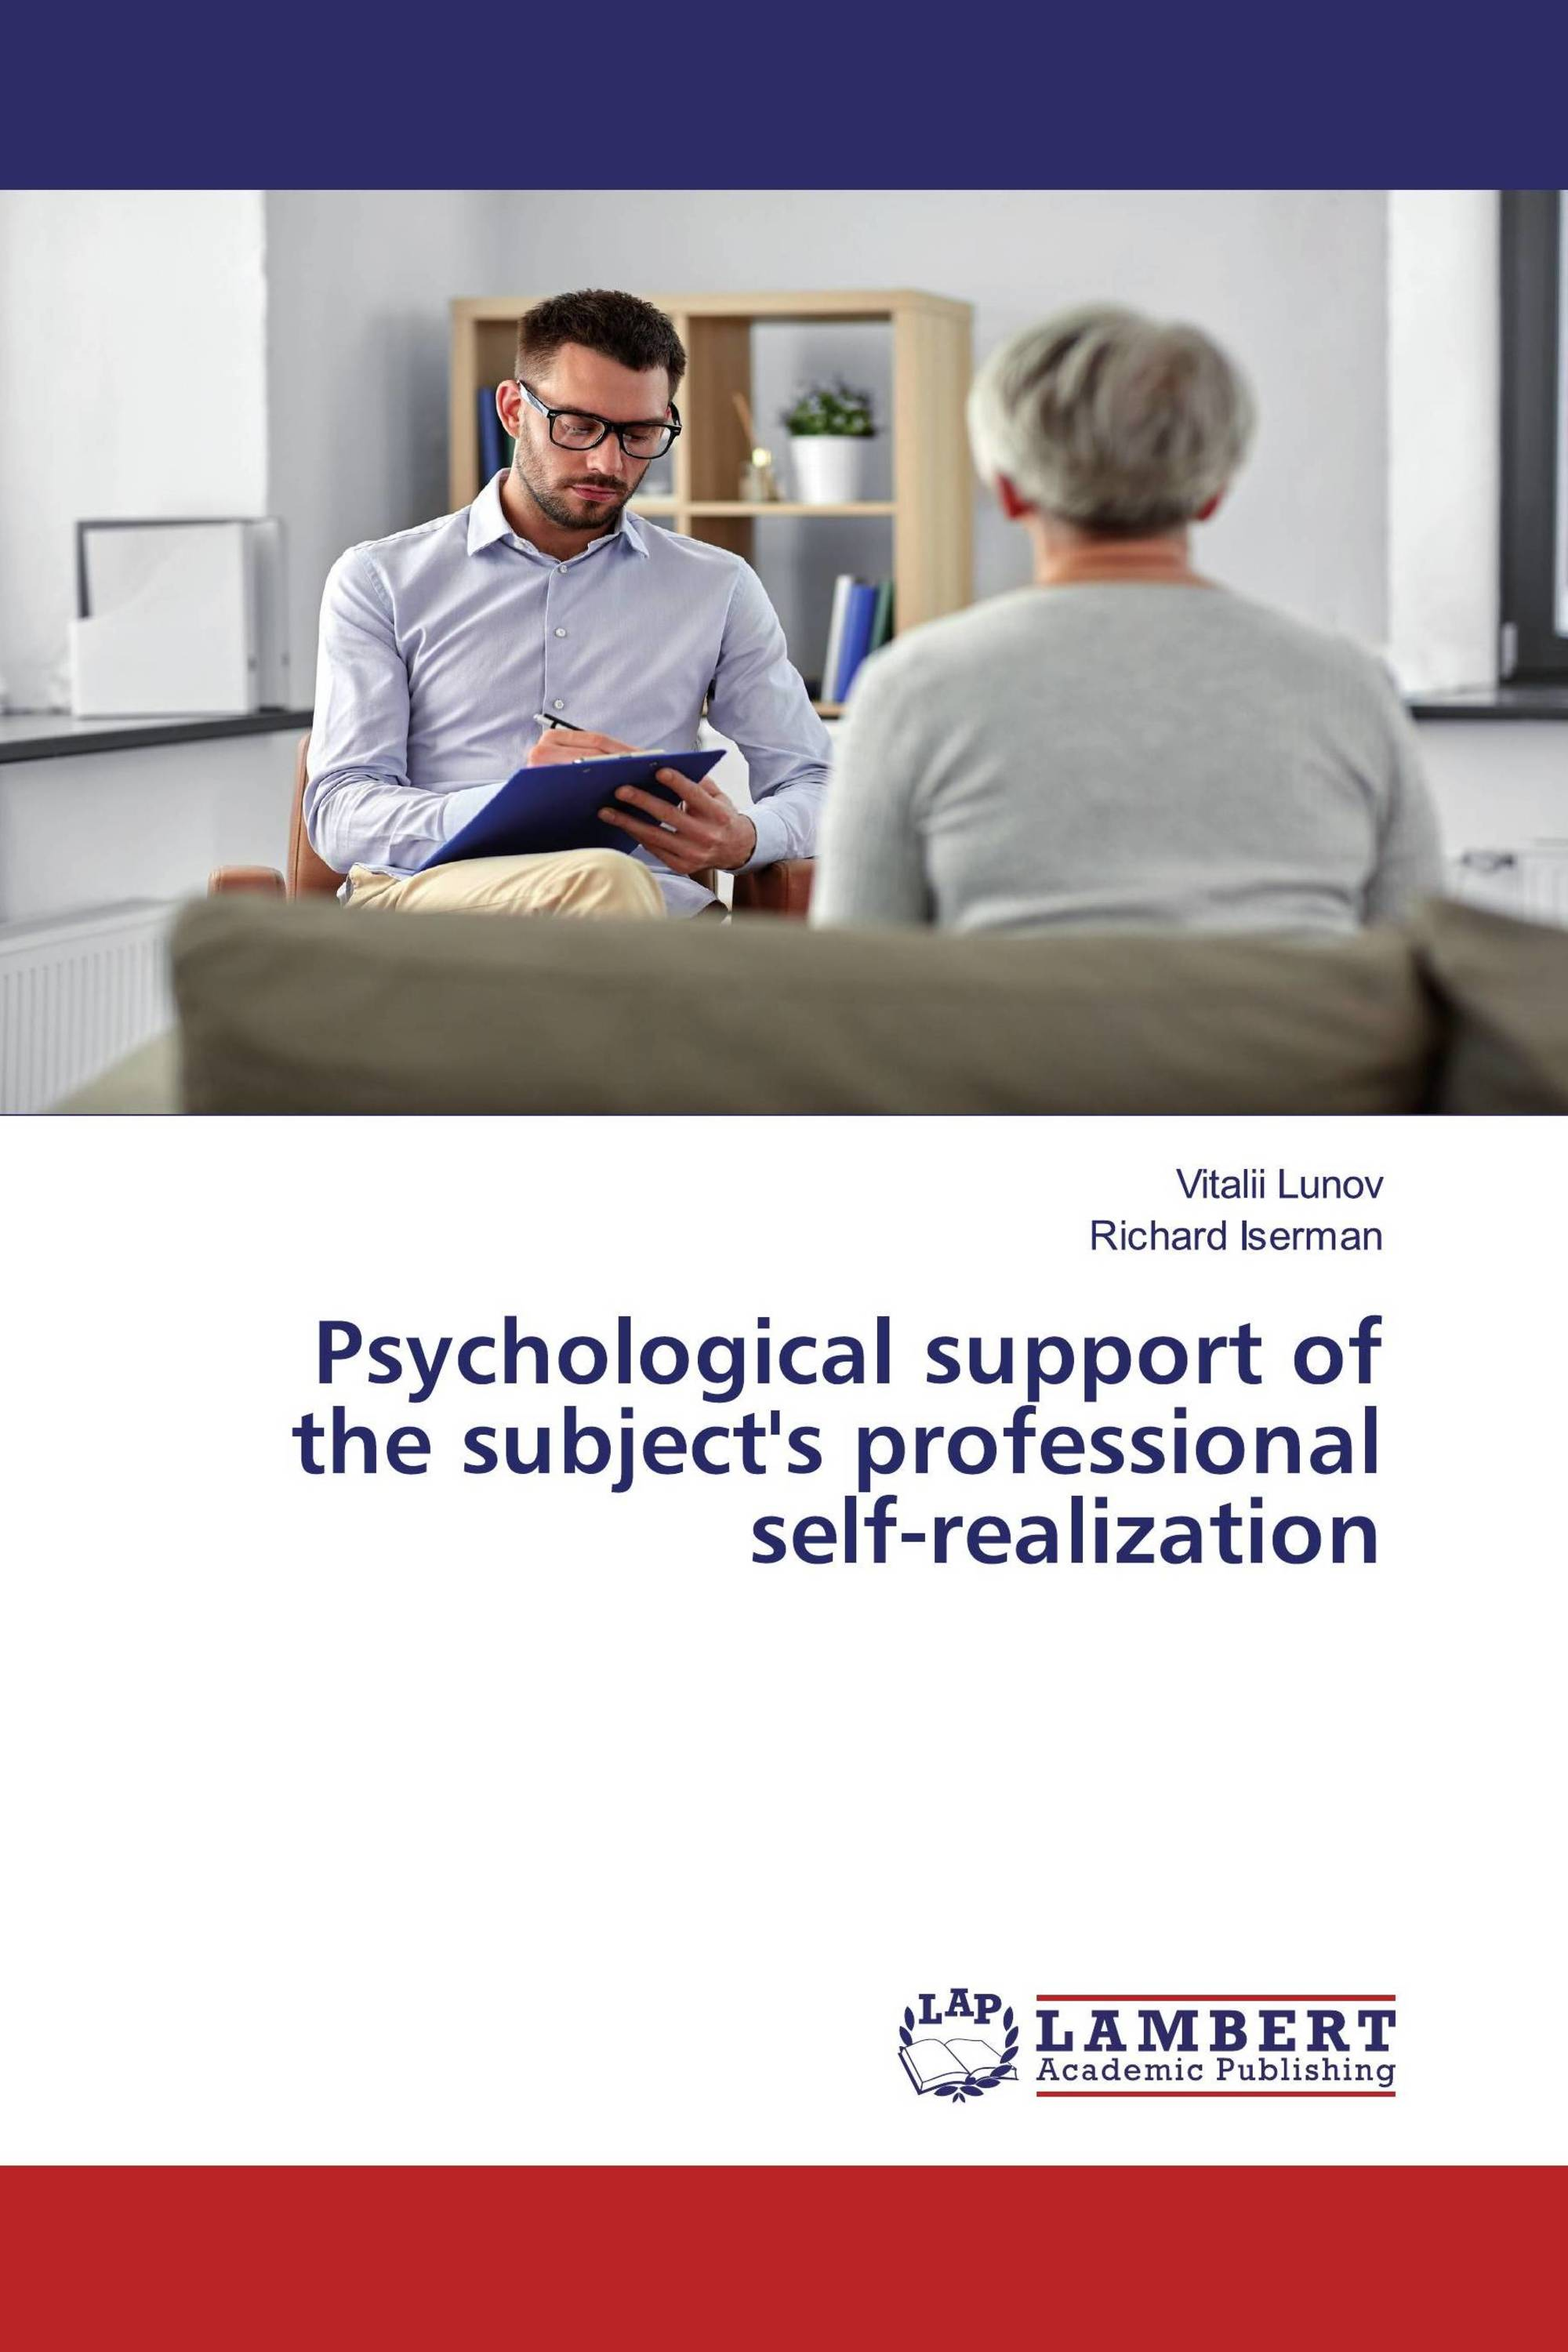 Psychological support of the subject's professional self-realization